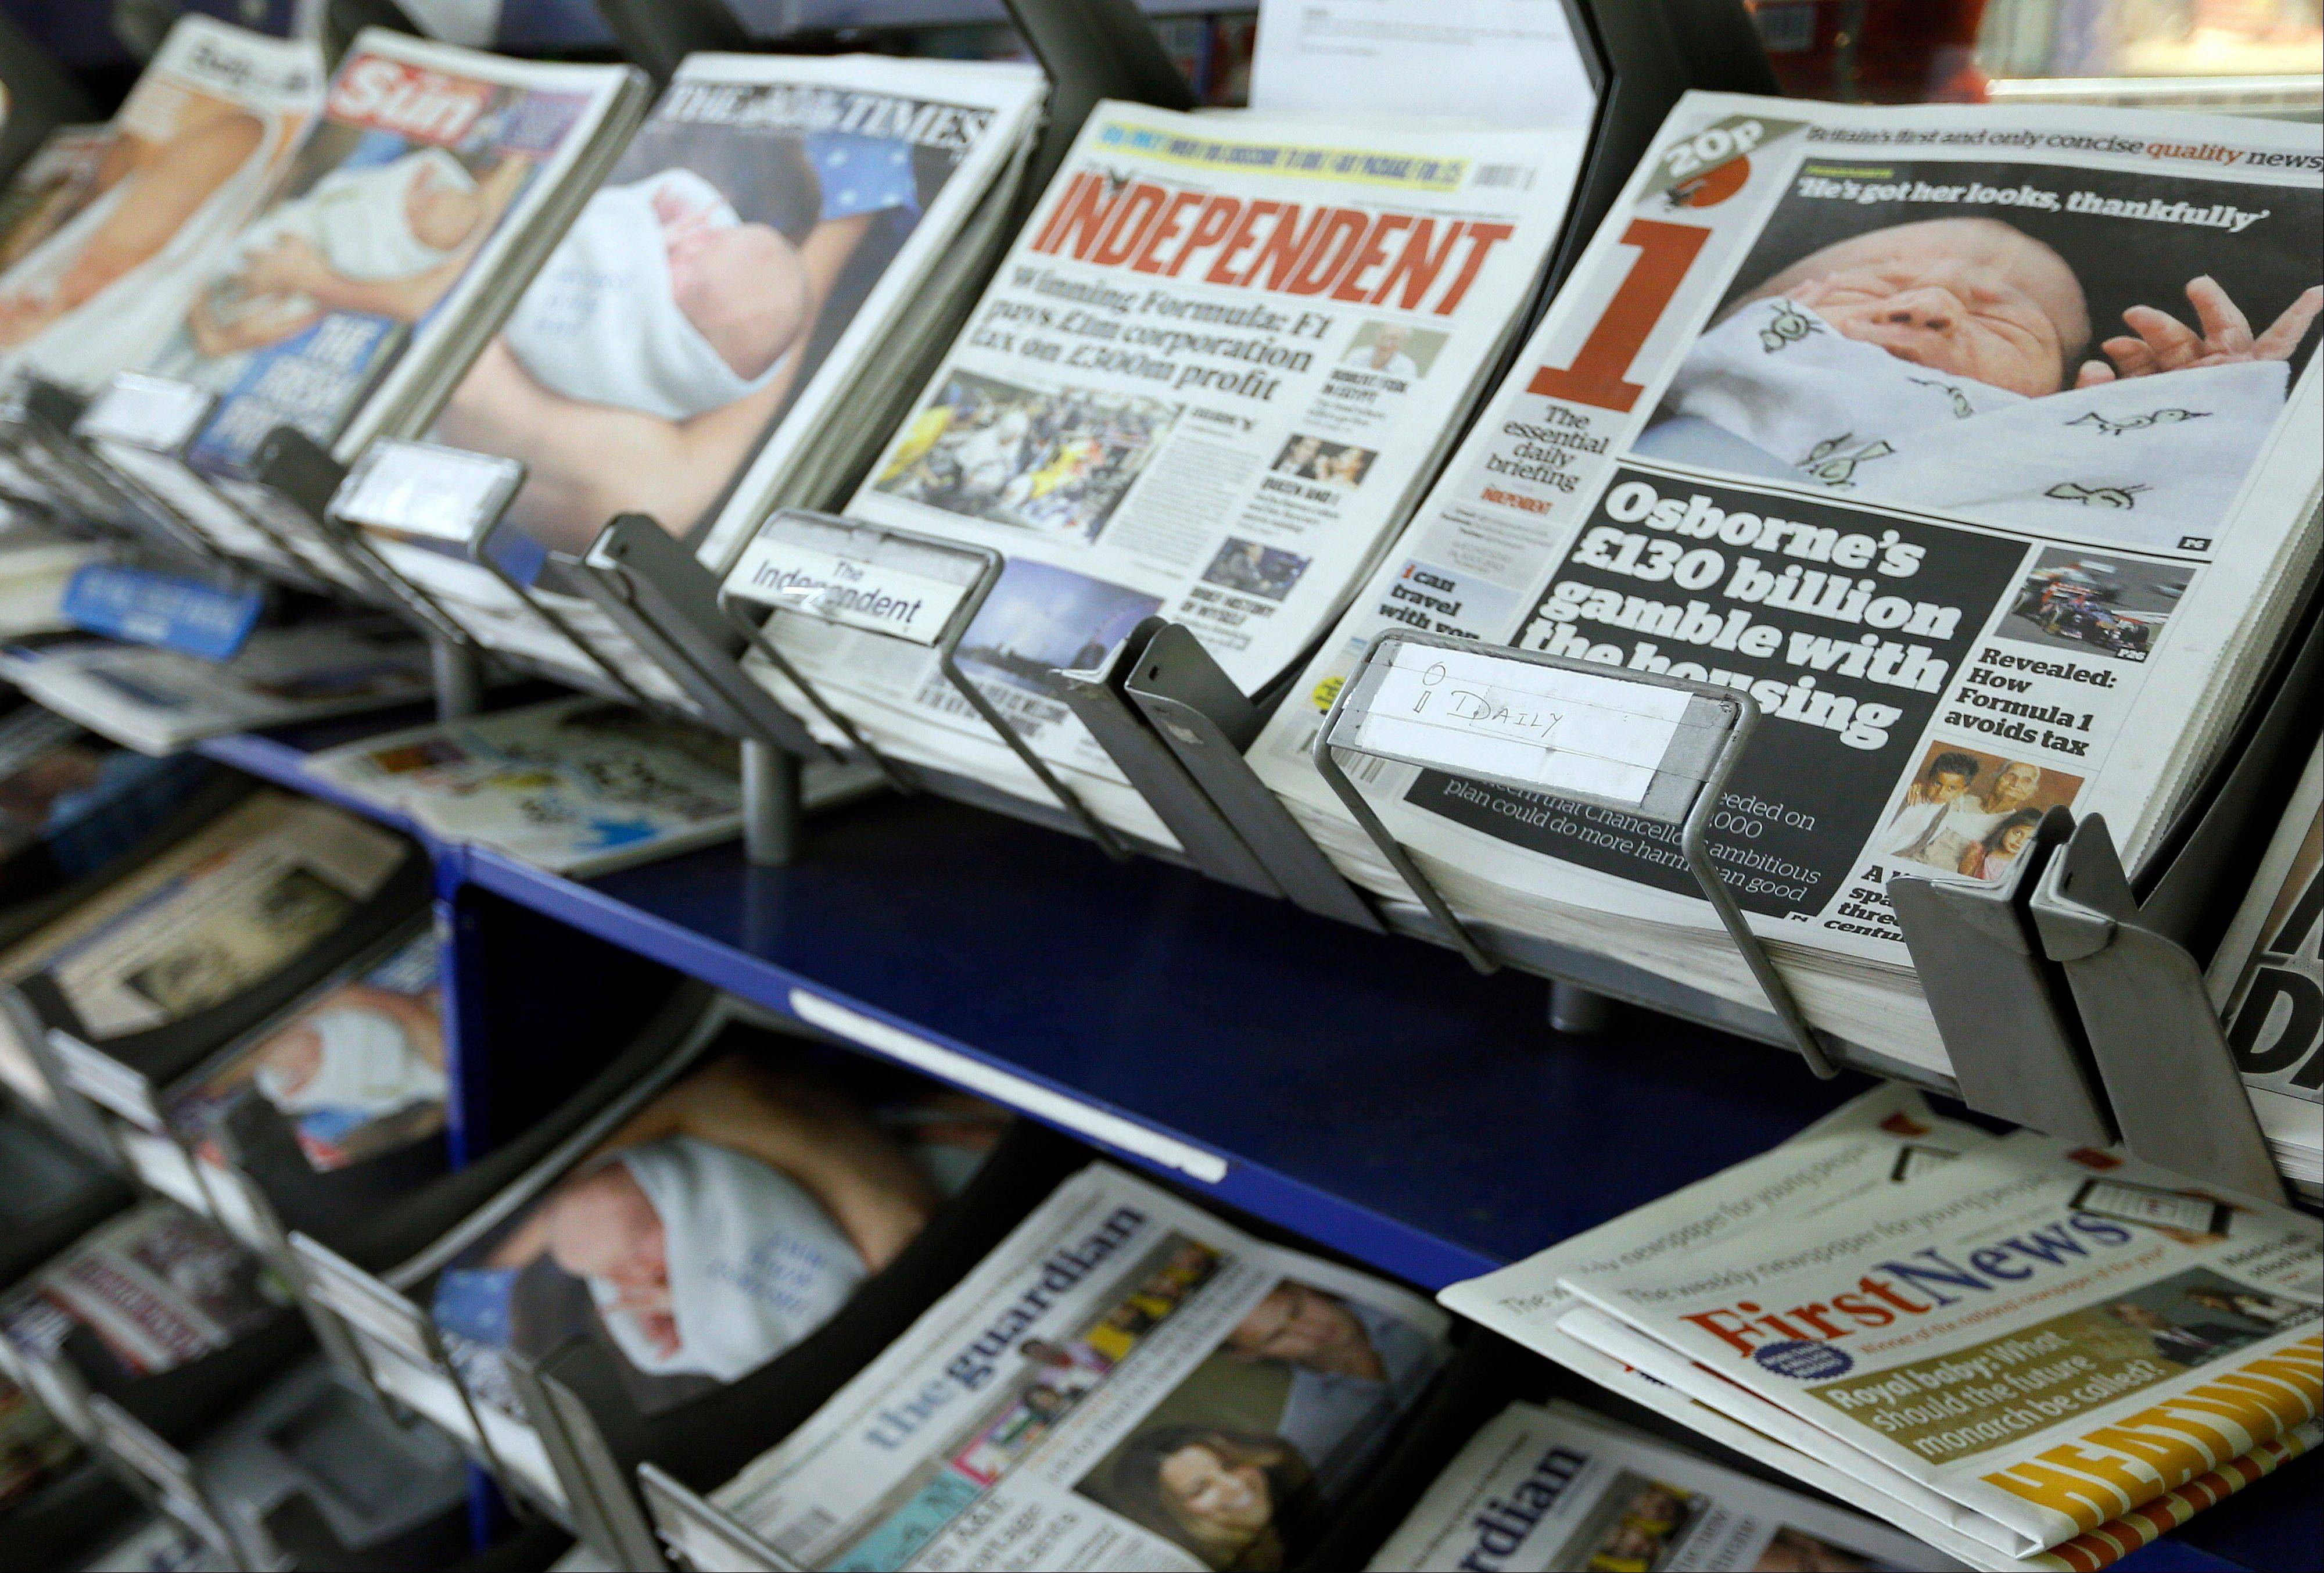 British newspapers are displayed for sale in London, Wednesday, July 24, 2013. The newspapers show coverage of the new royal baby boy, third in line to the throne.